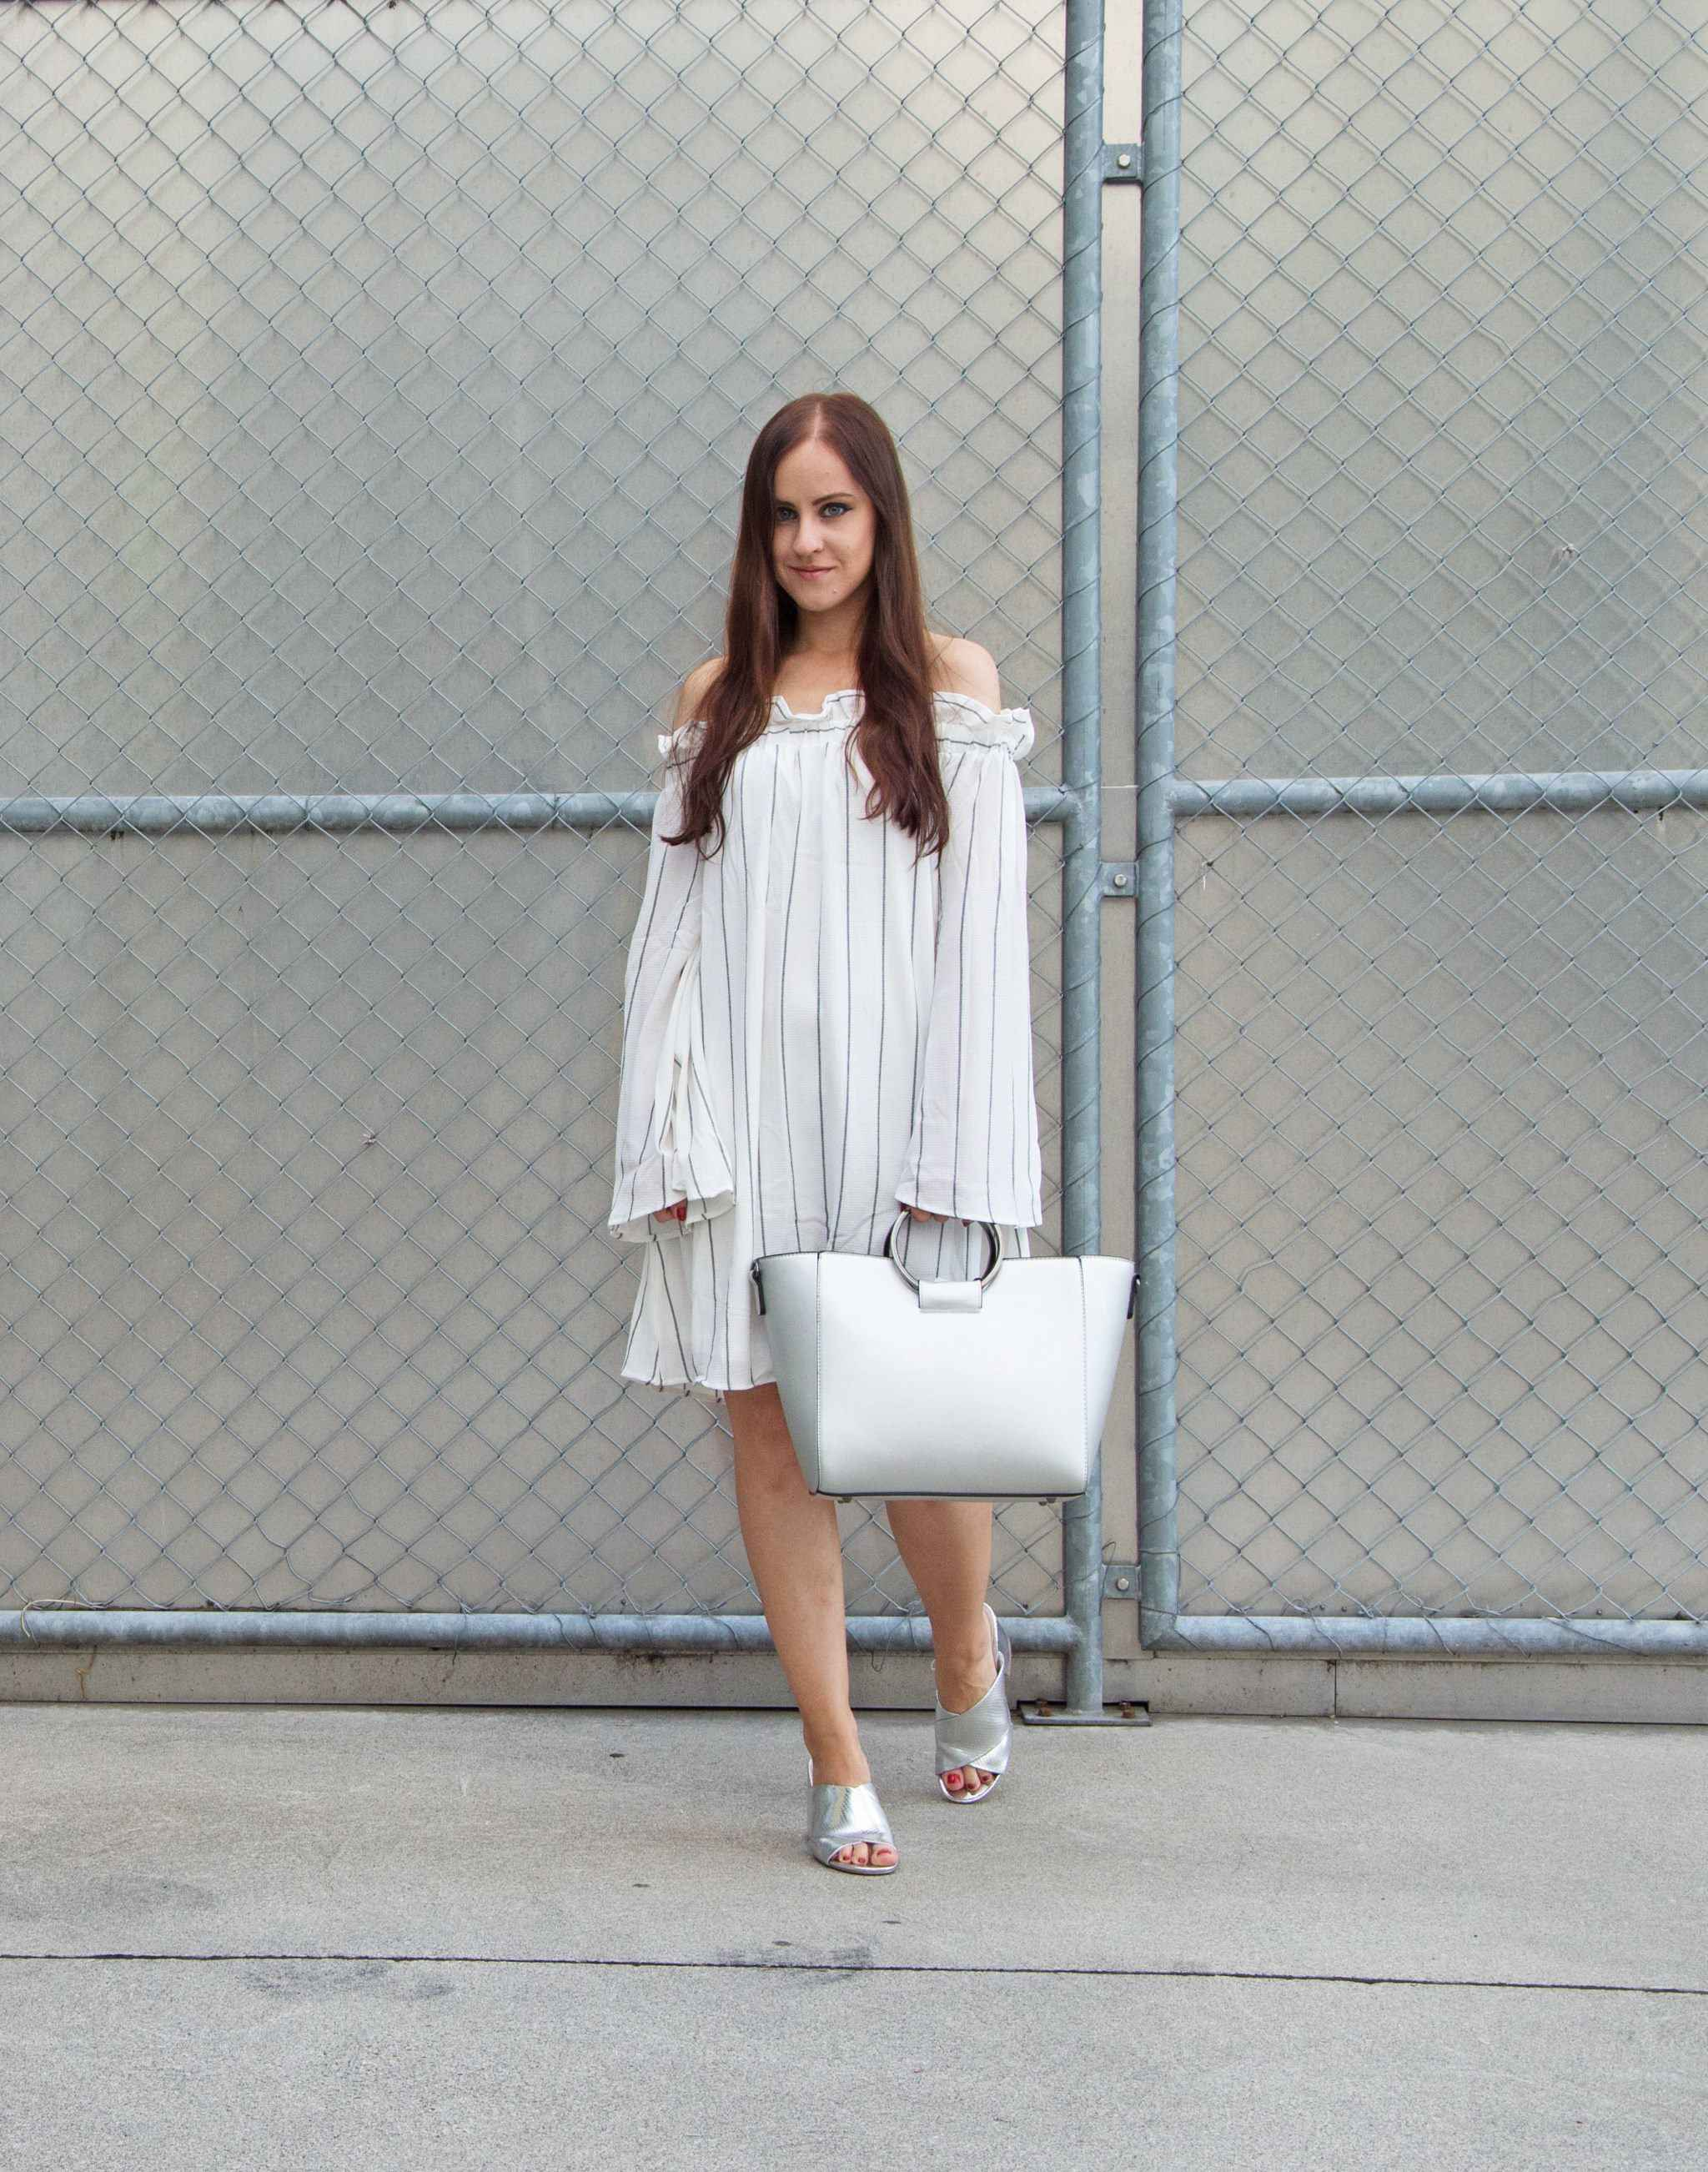 Off-Shoulder Dress and Mules, Fashion, Outfit, Look, Fashionblogger, OOTD, Offshoulderdress, mules, metallic